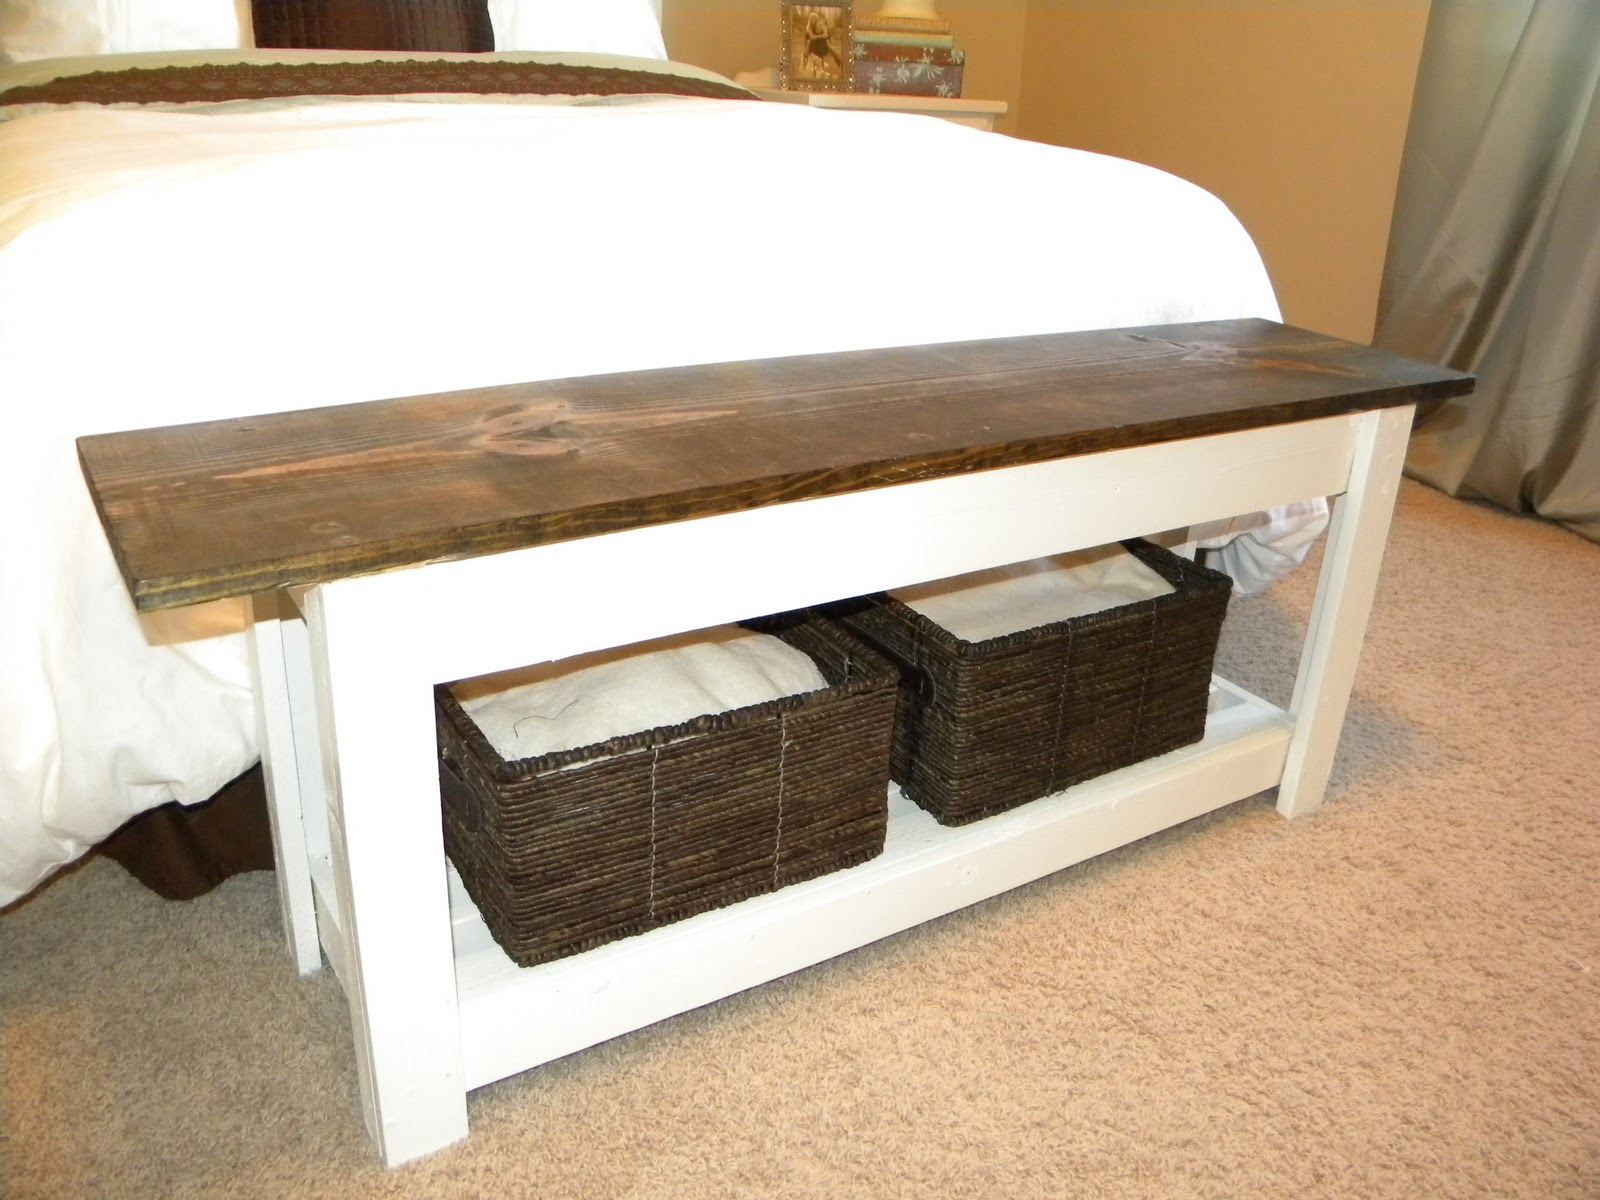 Bedroom Bench Table Thrifty And Chic Diy Projects And Home Decor